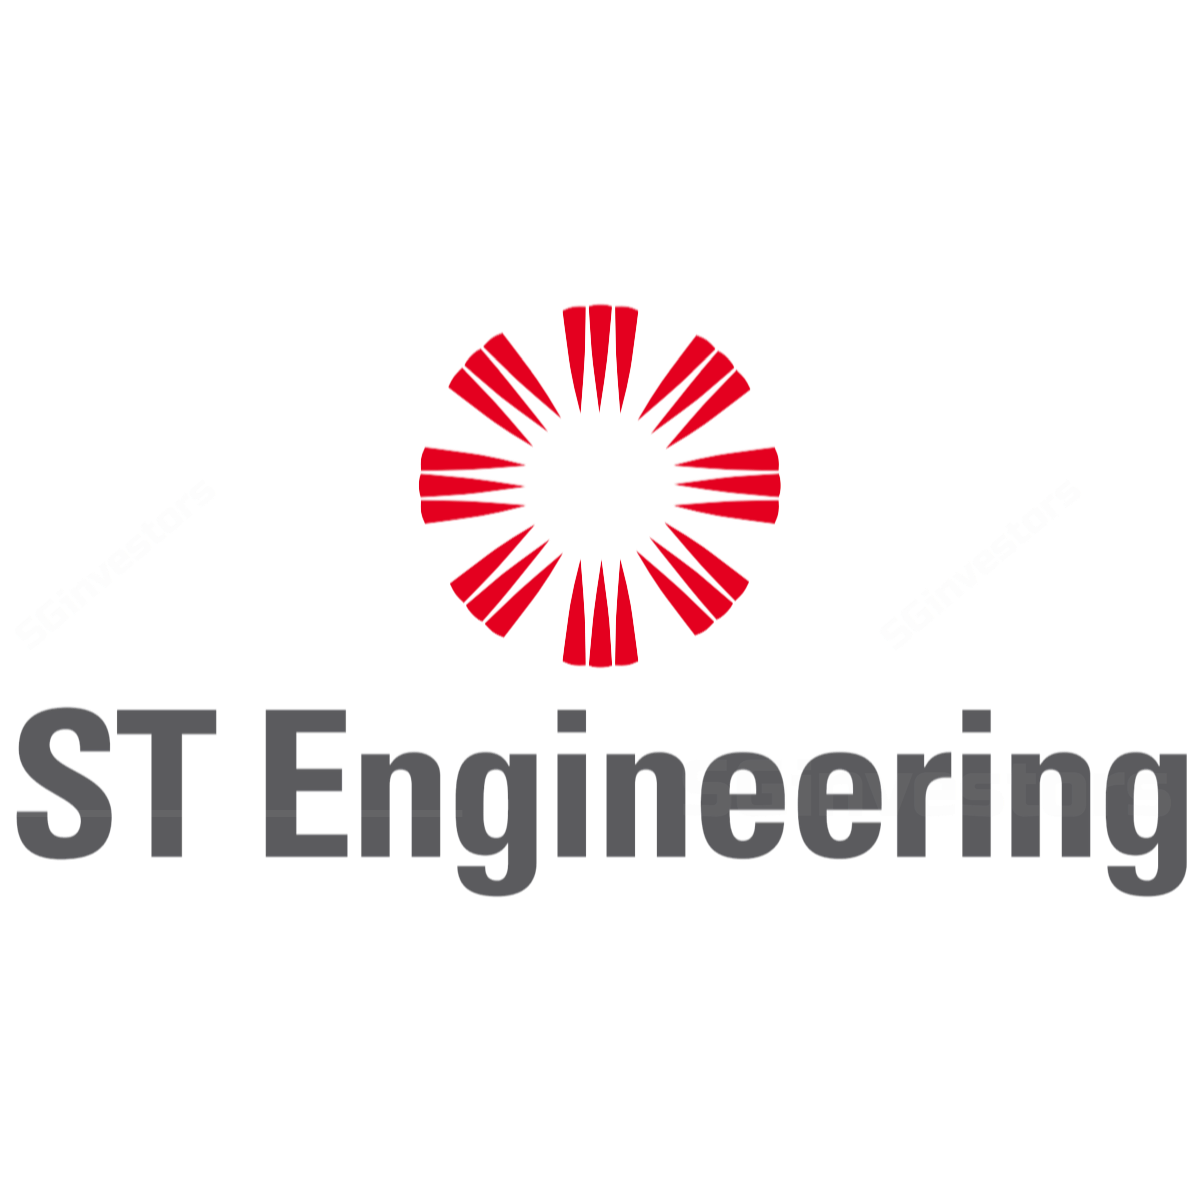 ST Engineering (STE SP) - UOB Kay Hian 2017-11-09: 3Q17 In Line, New Investments Will Provide Long-term Growth Platform